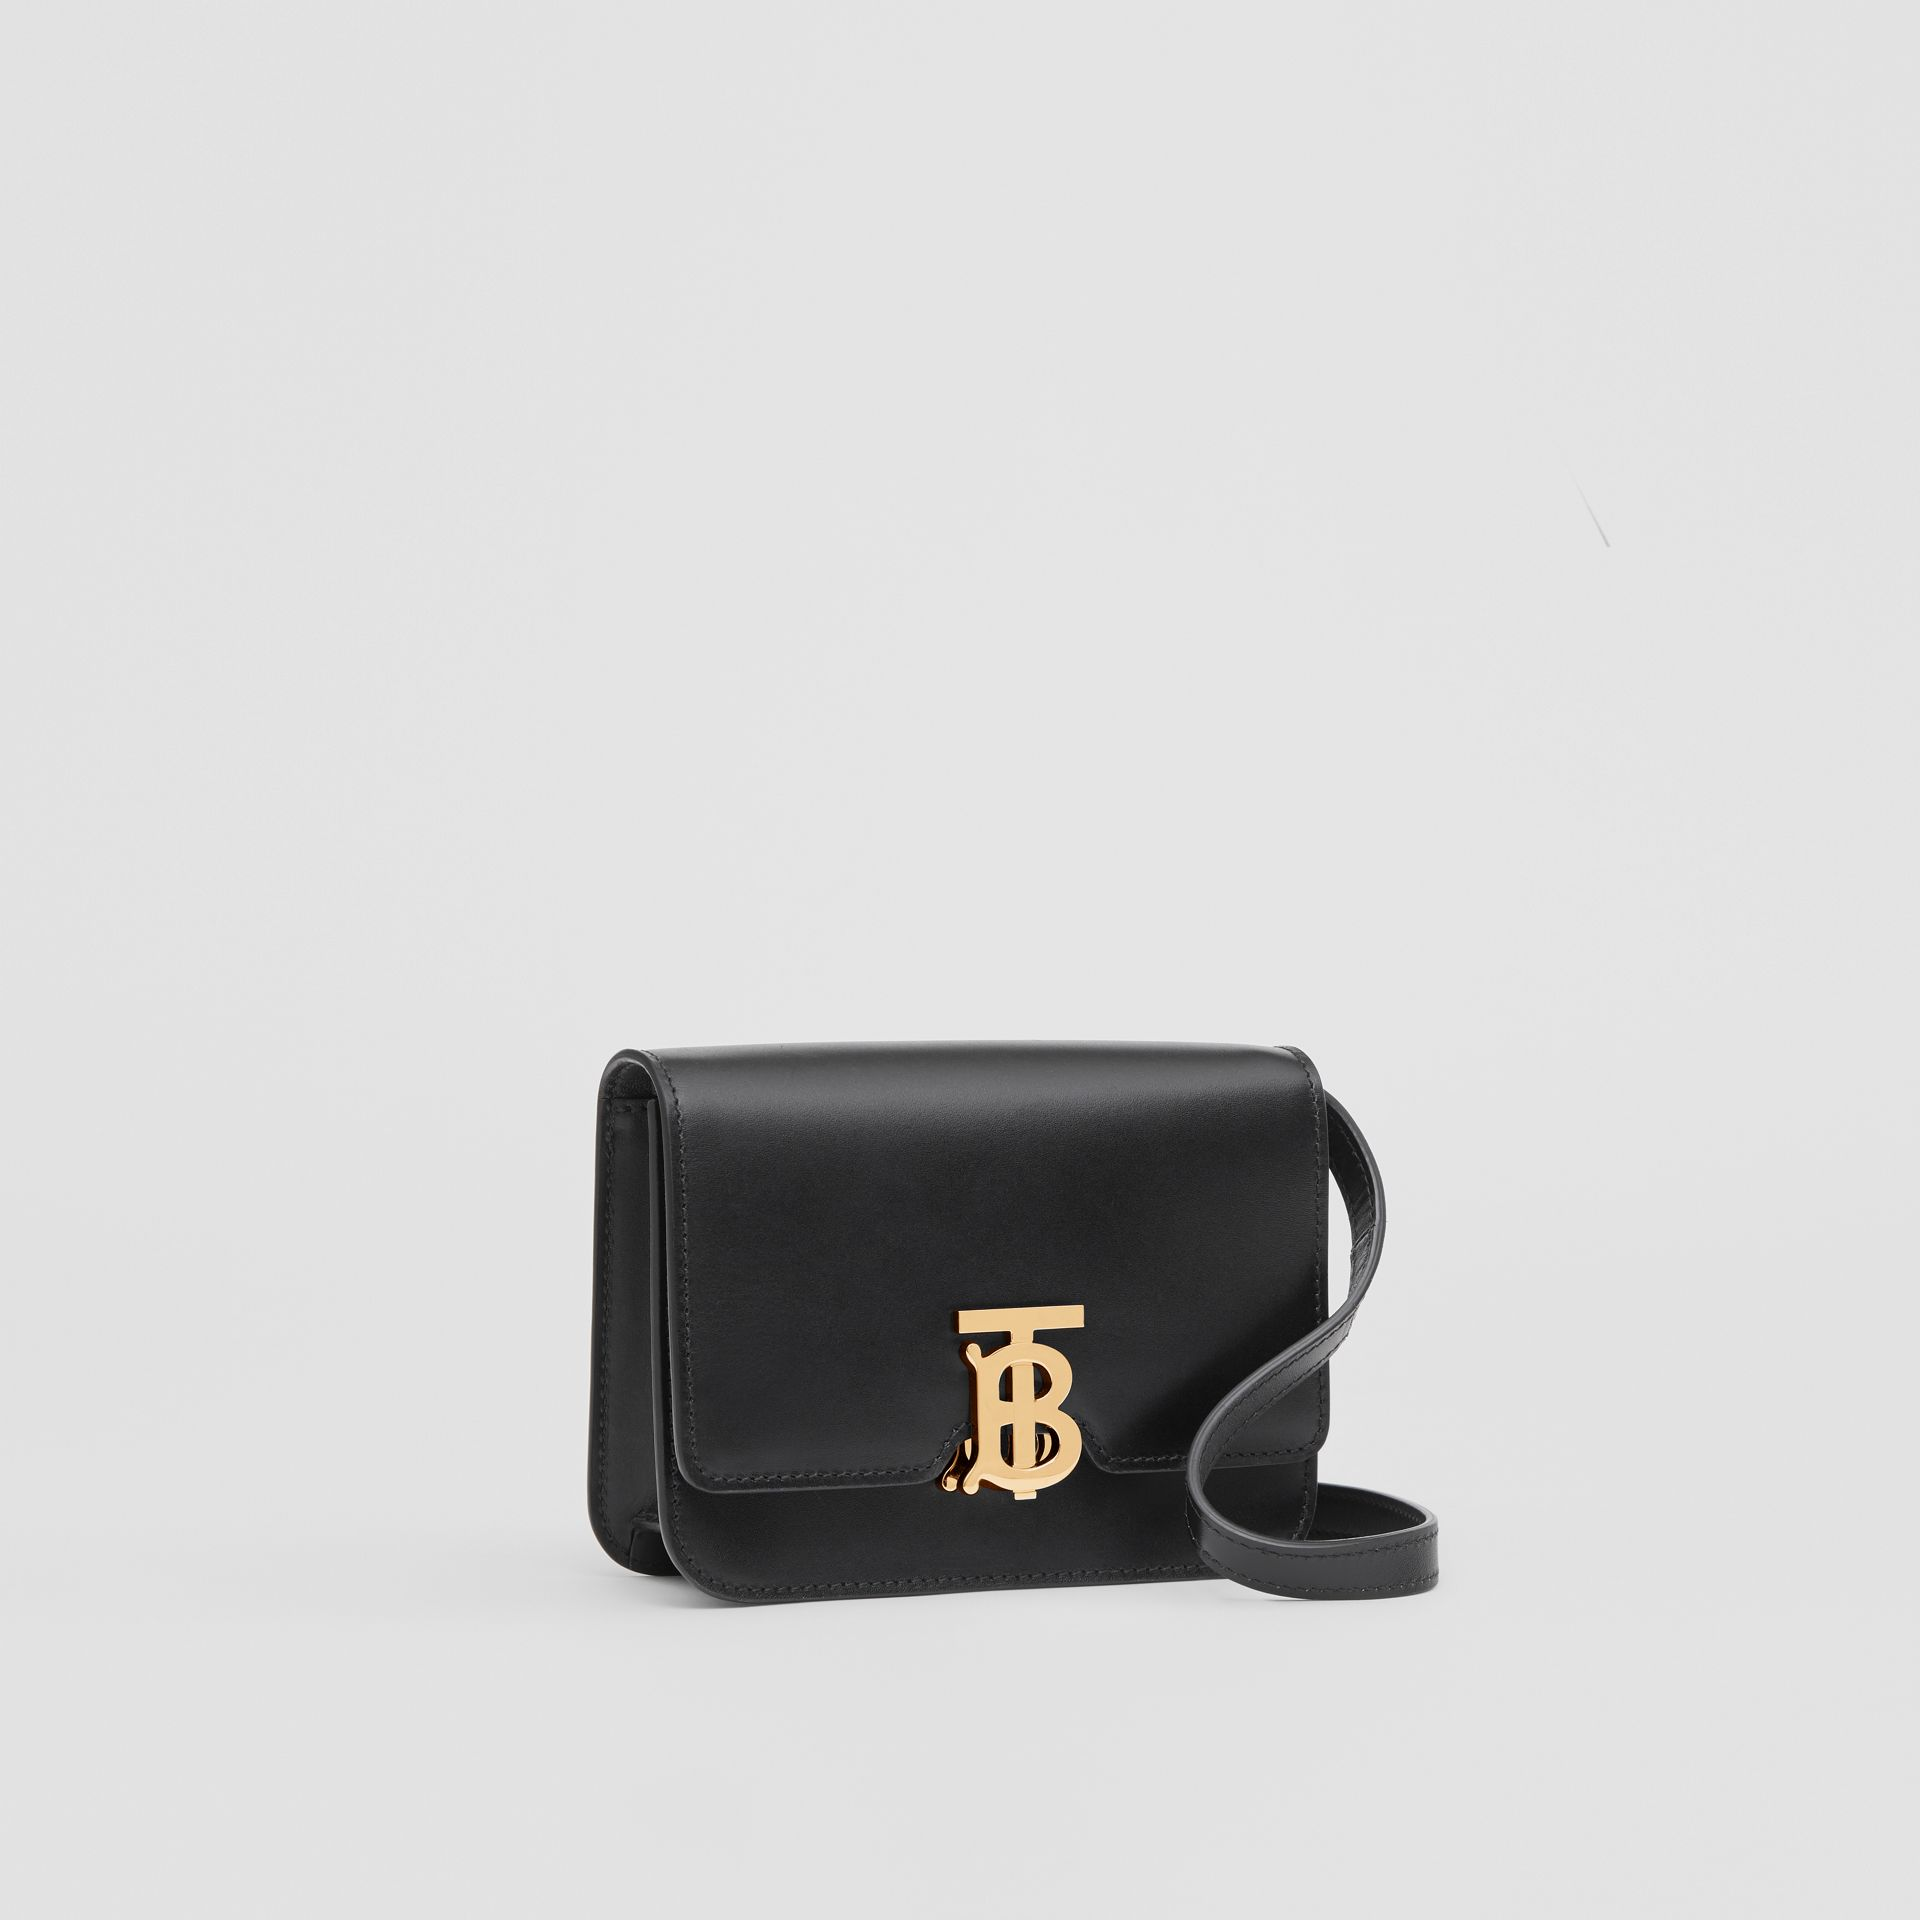 Mini Leather TB Bag in Black - Women | Burberry United States - gallery image 6